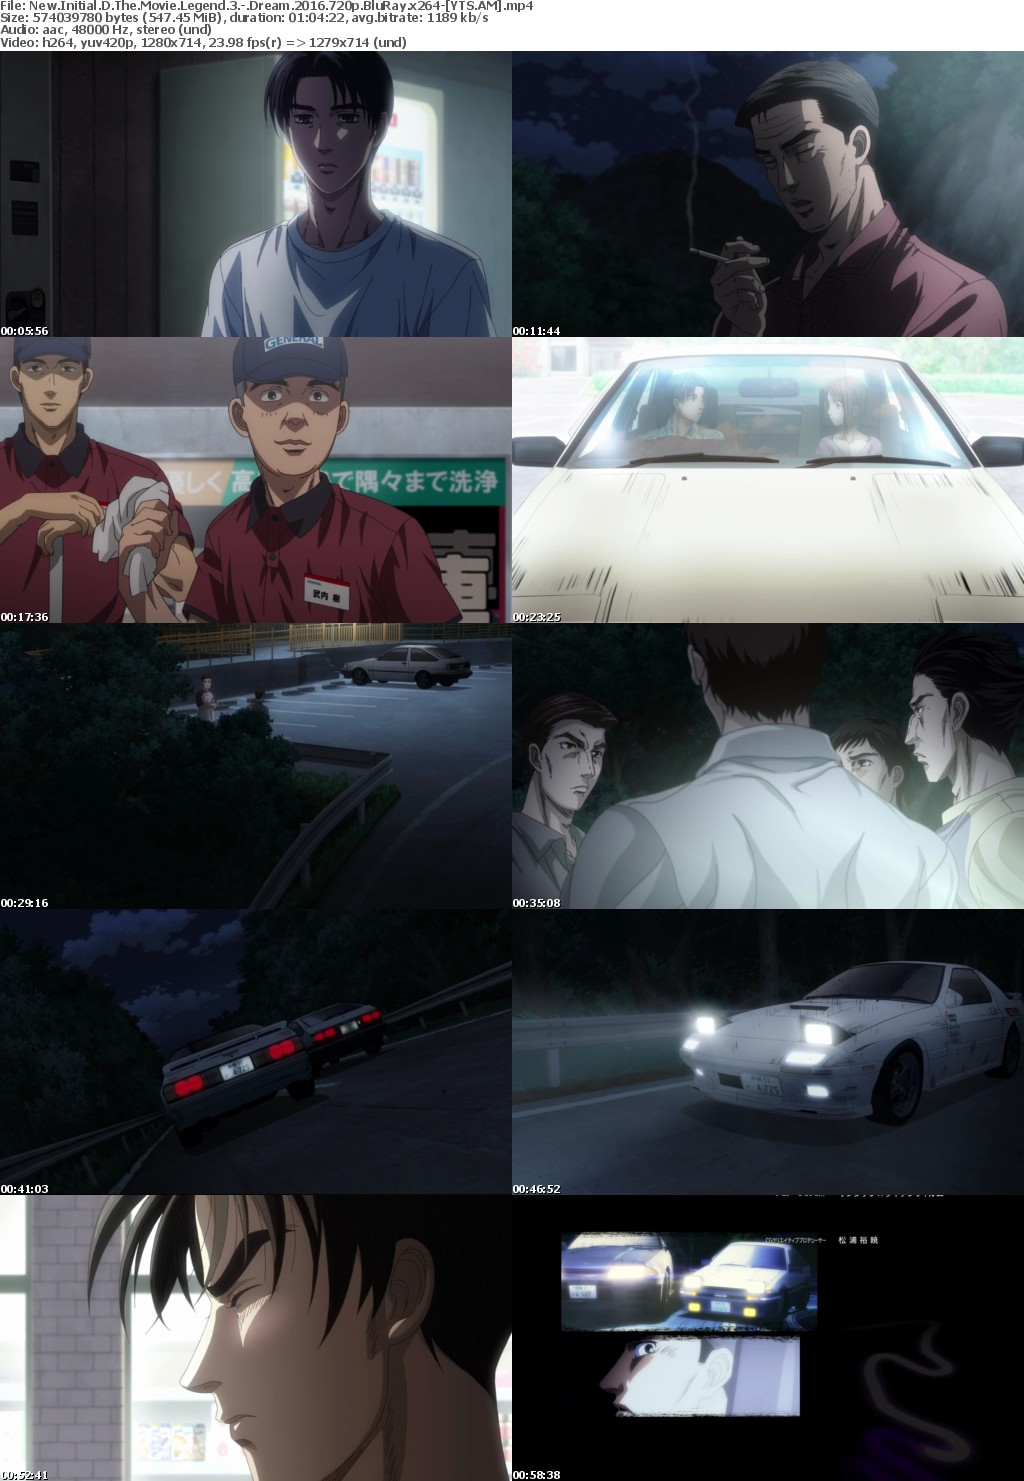 New Initial D the Movie Legend 3 - Dream (2016) [BluRay] [720p] YIFY